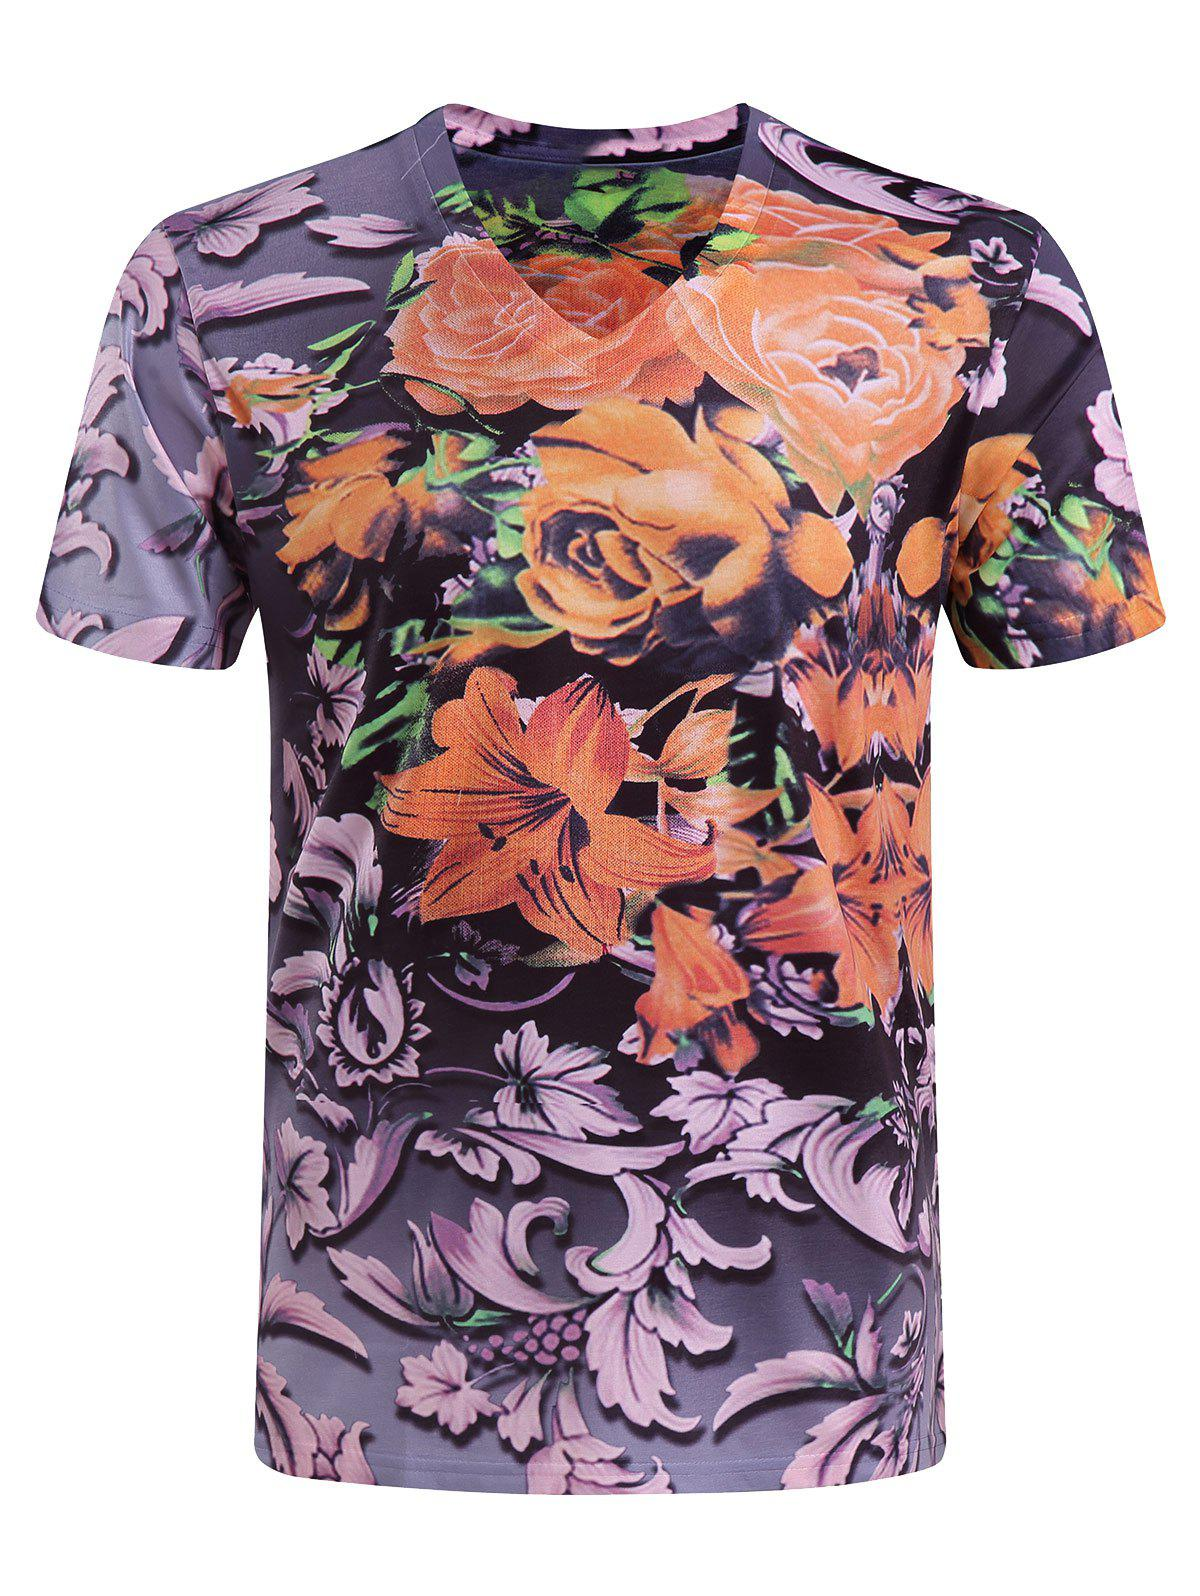 Men's Casual Short Sleeves Flower Printing V-Collar T-Shirt - COLORMIX M